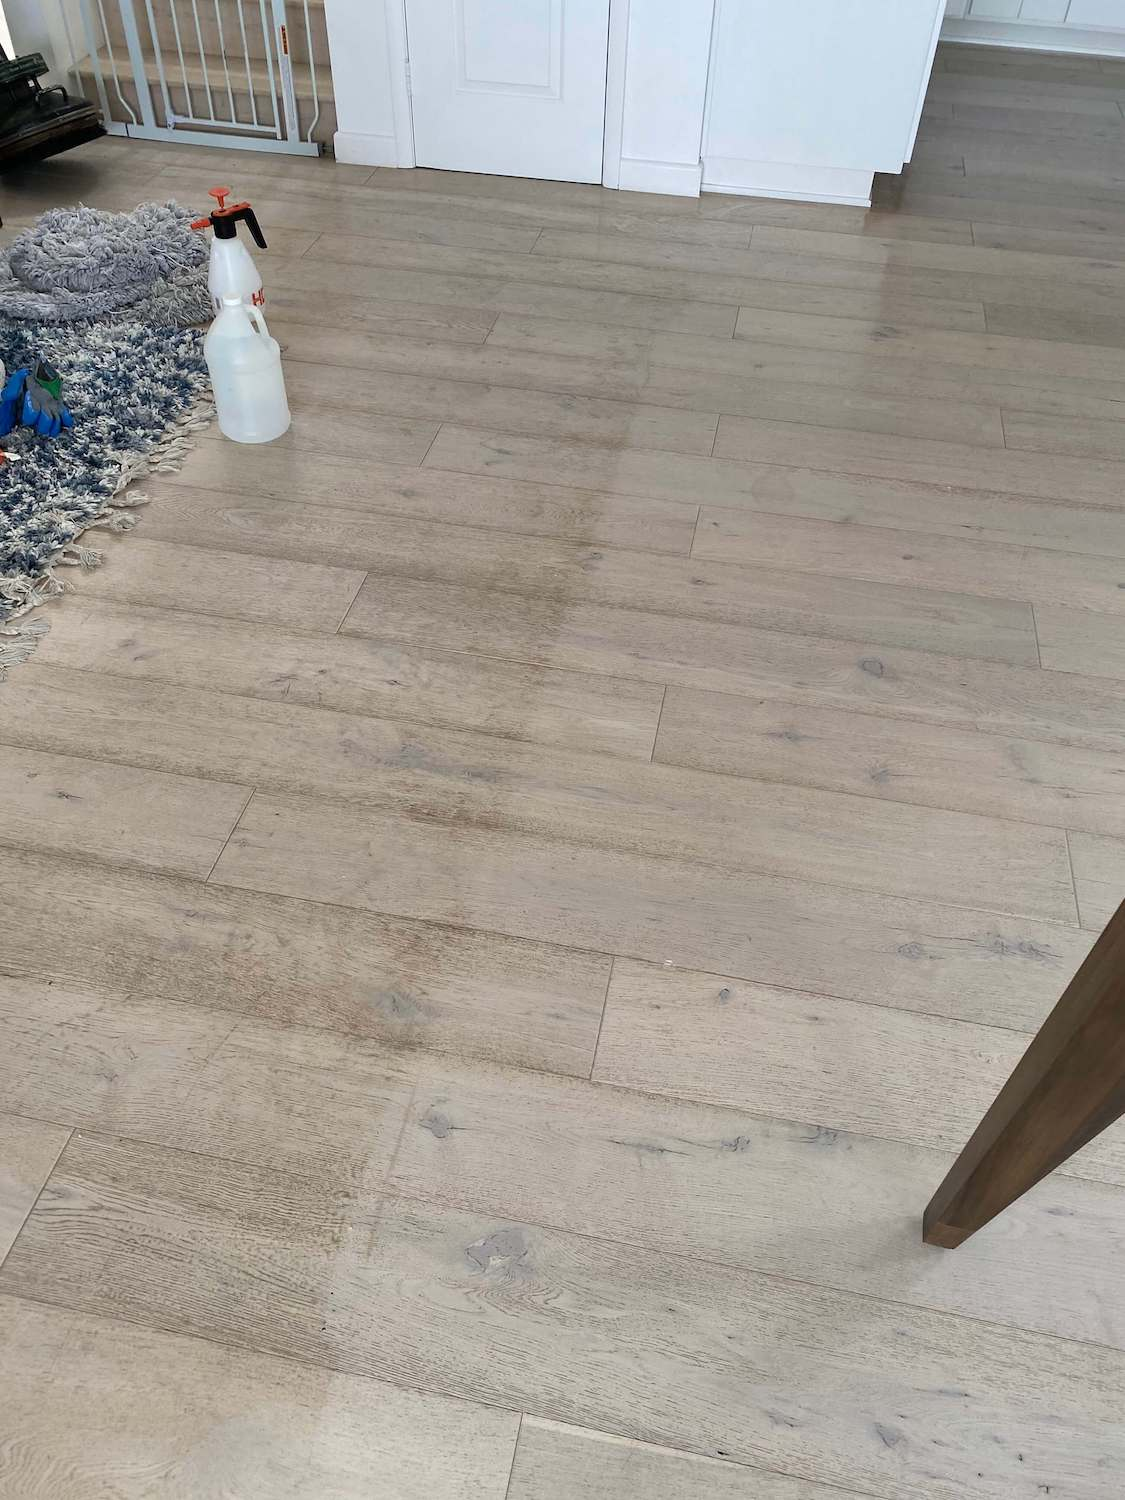 Chem-Dry wood floor cleaning removes bacteria, allergens, and dirt